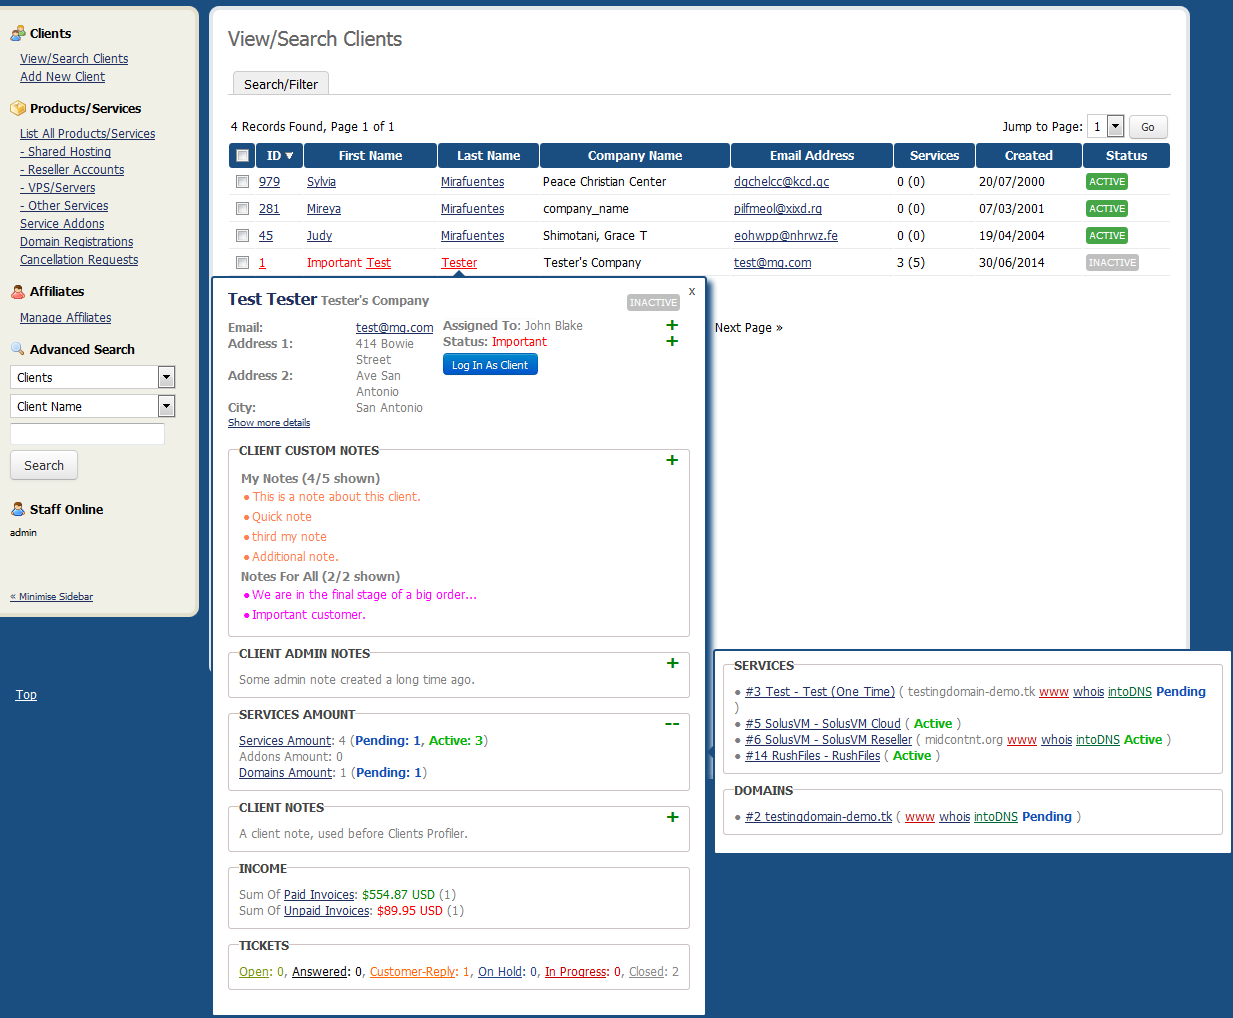 Client Profile Viewer For WHMCS: Screen 2